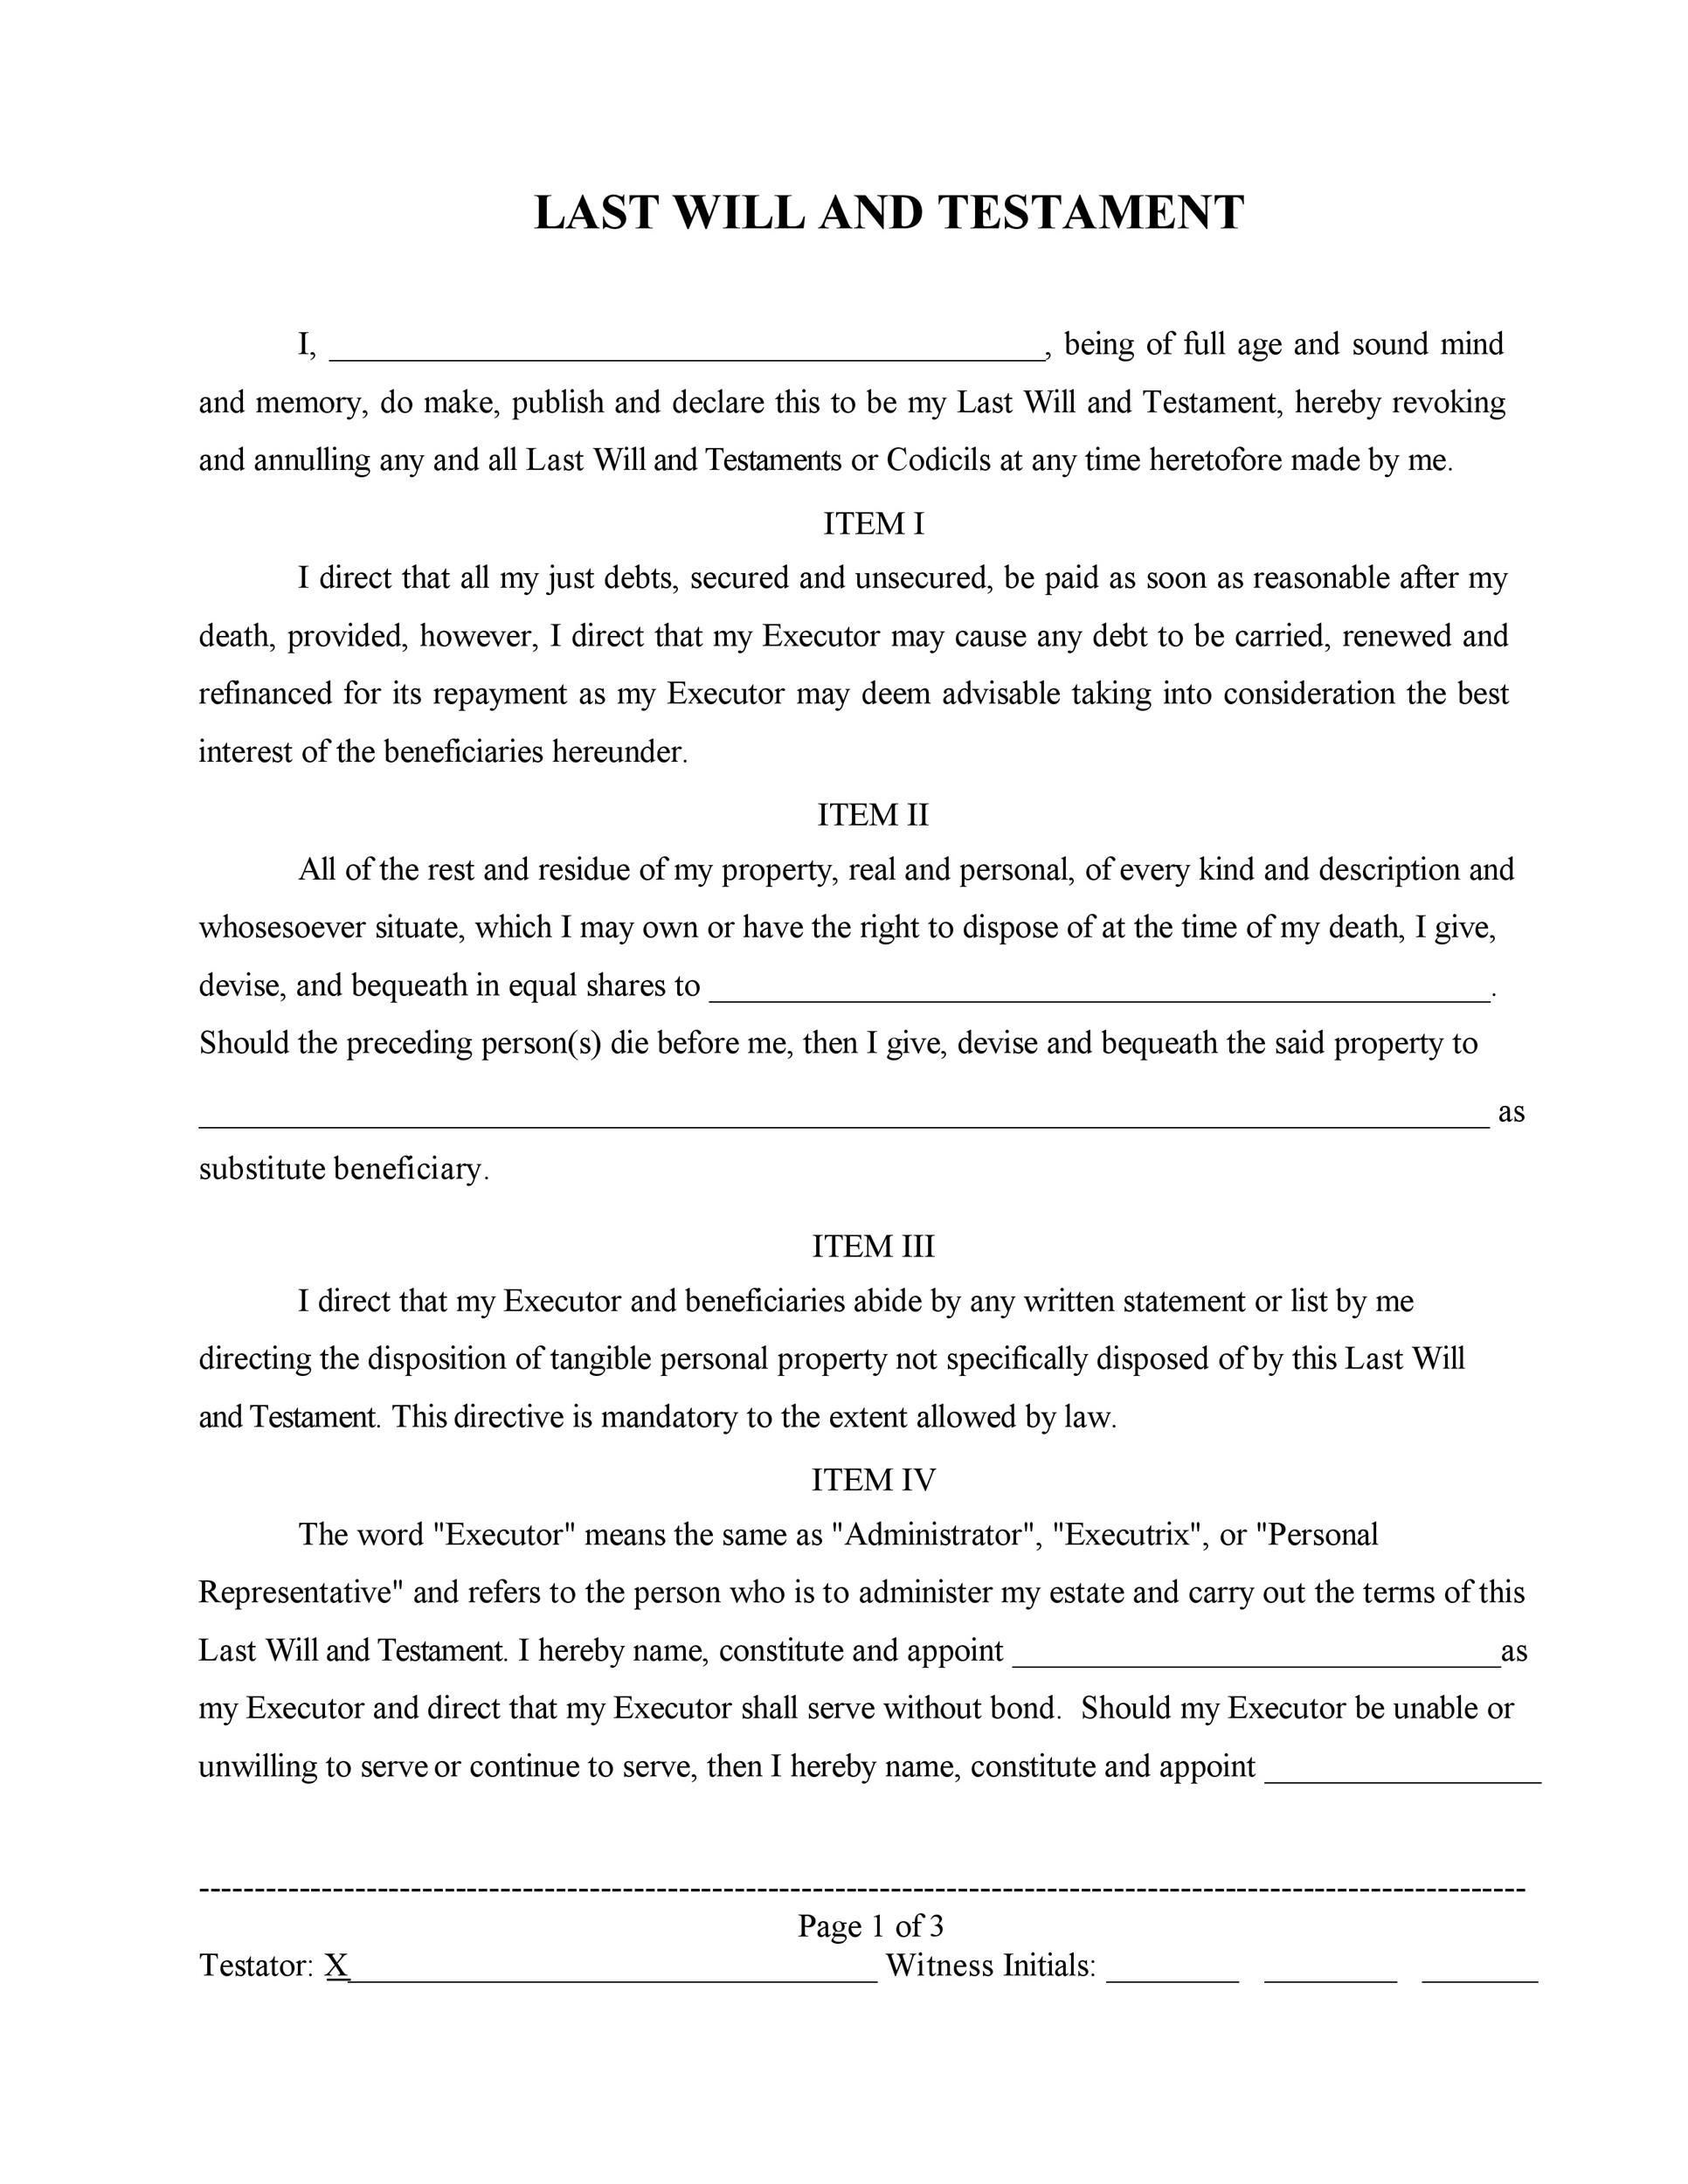 39 last will and testament forms templates template lab for Writing a will template free